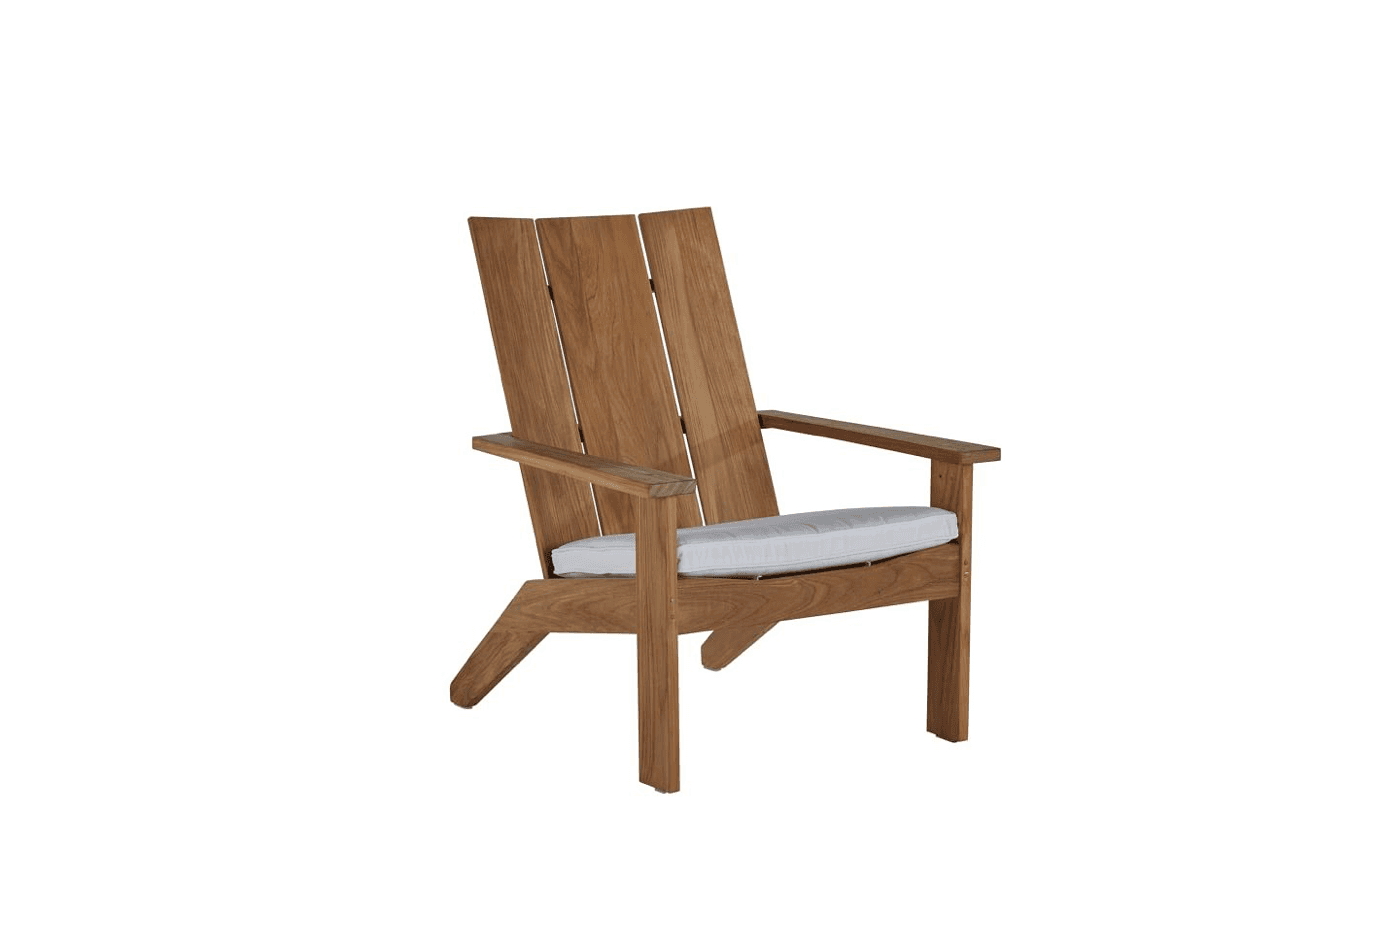 The Persephone Teak Adirondack Chair is hand-crafted from plantation-grown, marine-grade teak; $src=